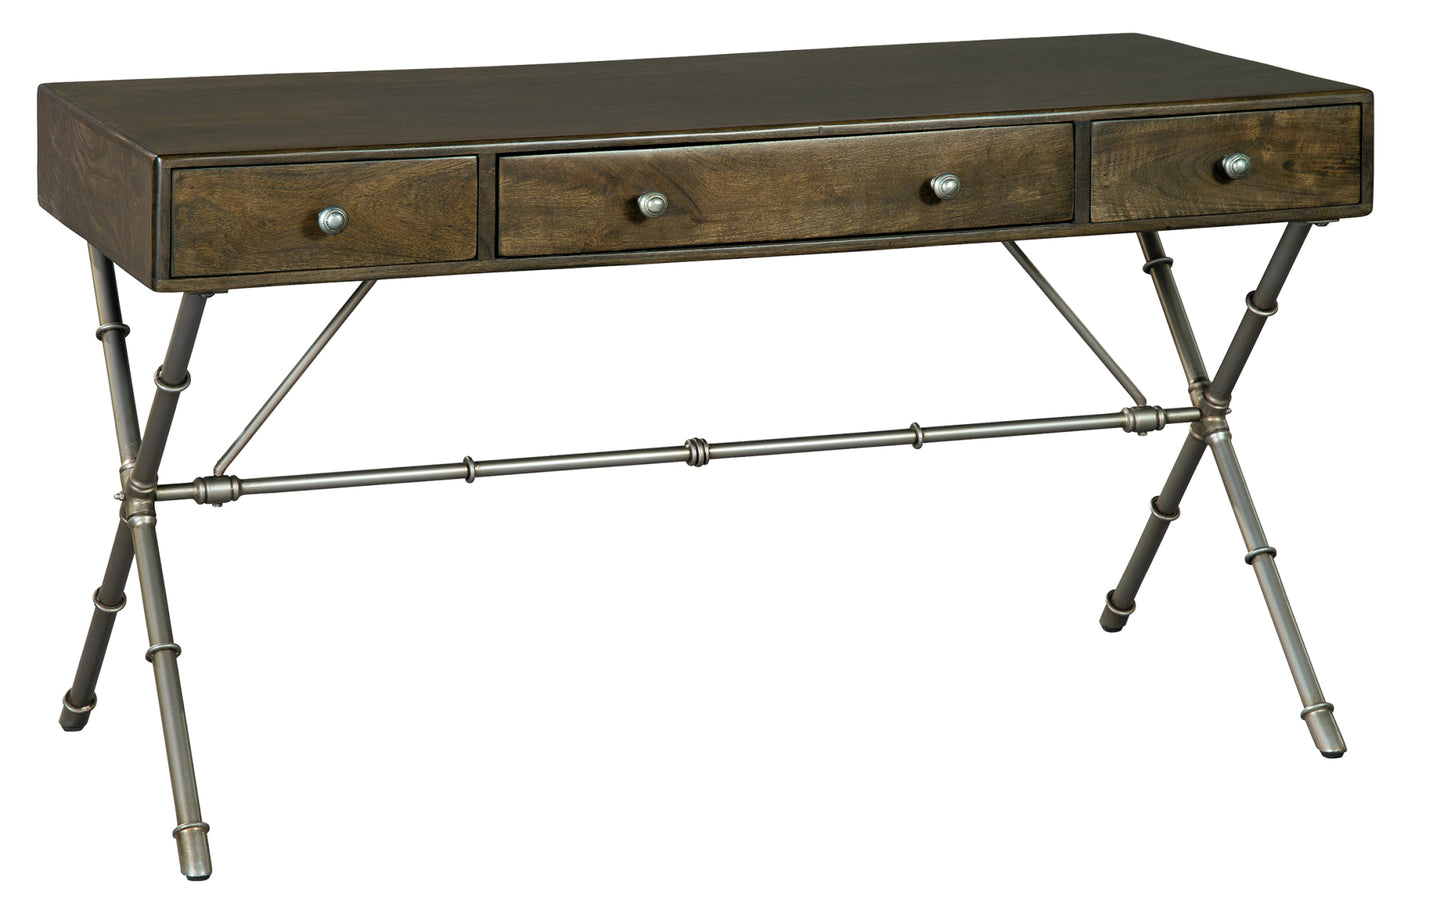 Hekman Office At Home Cambidge Desk 27859 - Curios And More